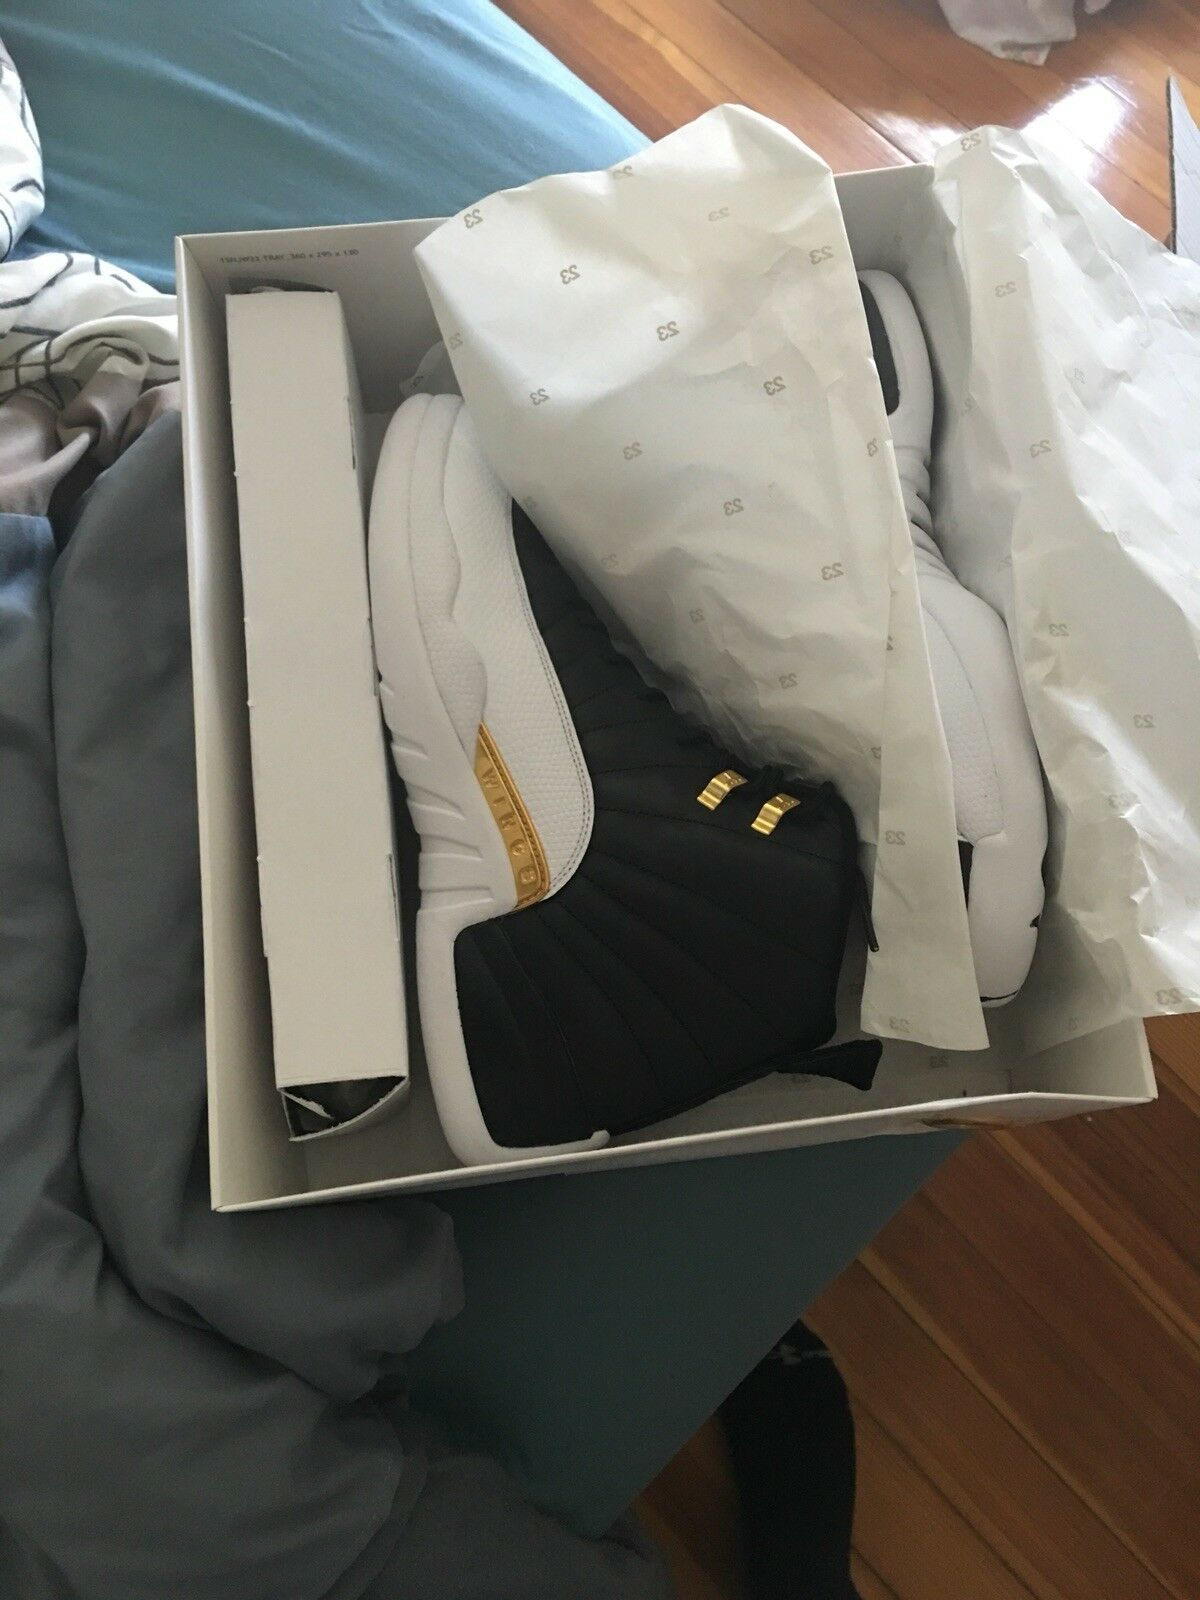 Jordan 12 wings size 12